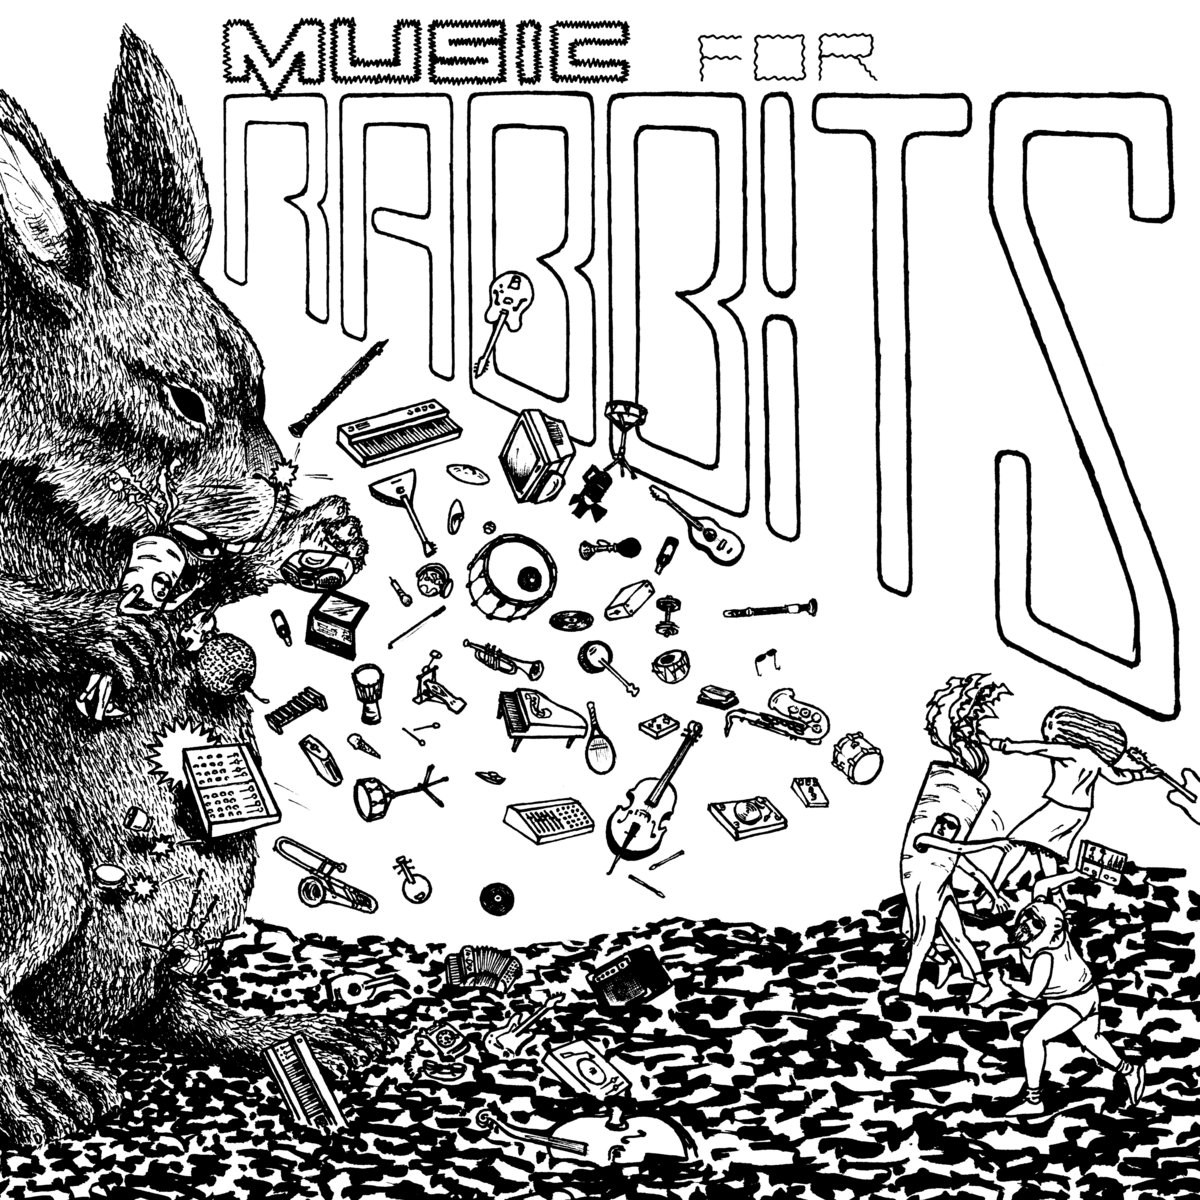 Music for Rabbits